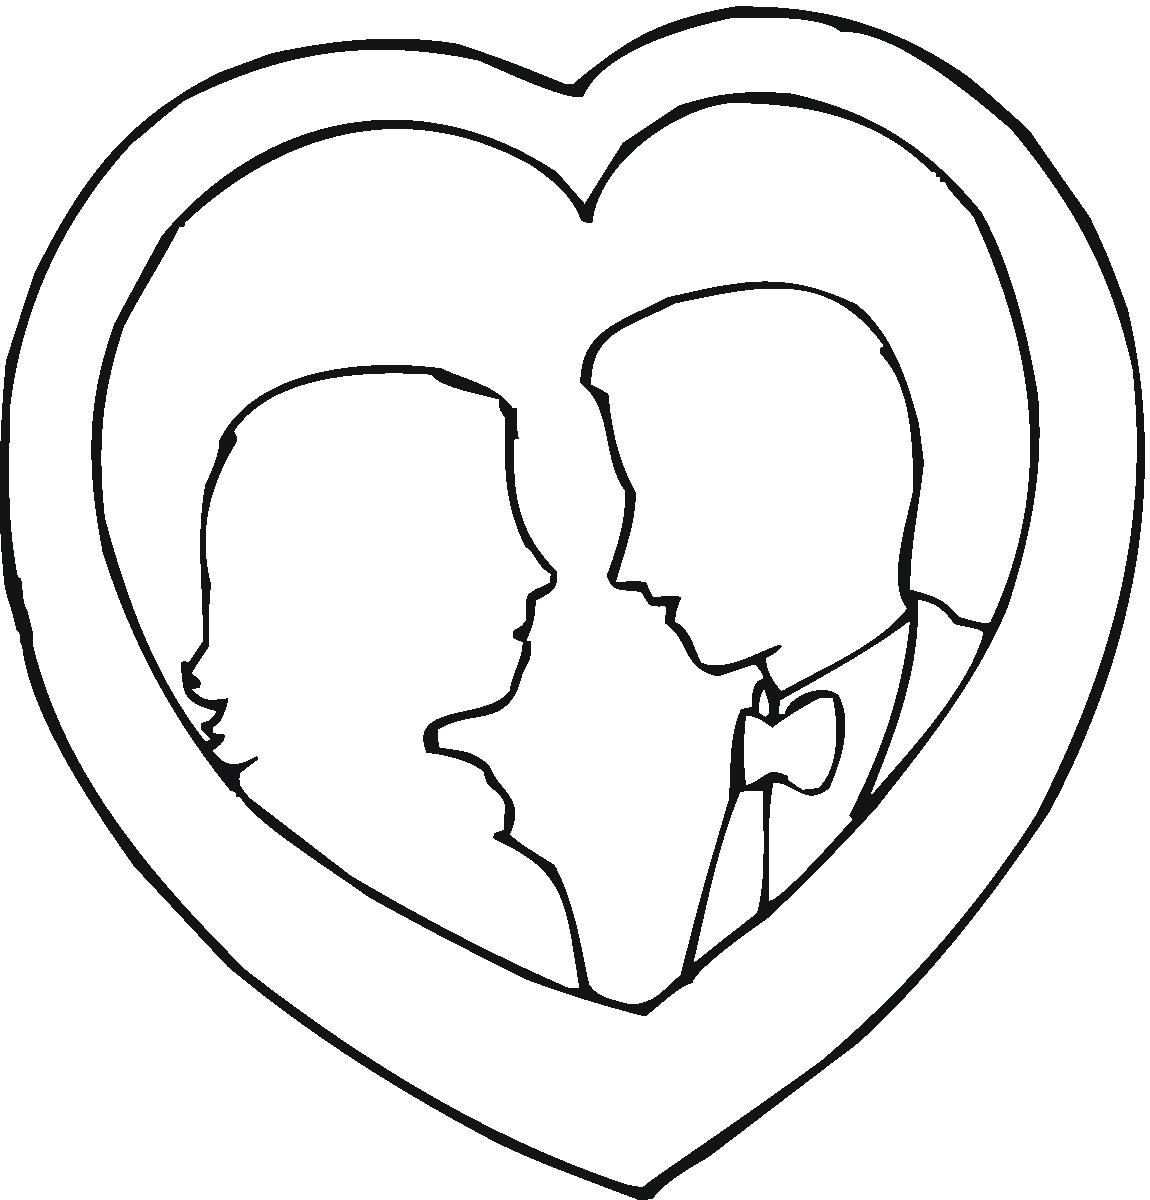 Hearts In A Row Clipart Clipart Free Clipart Image